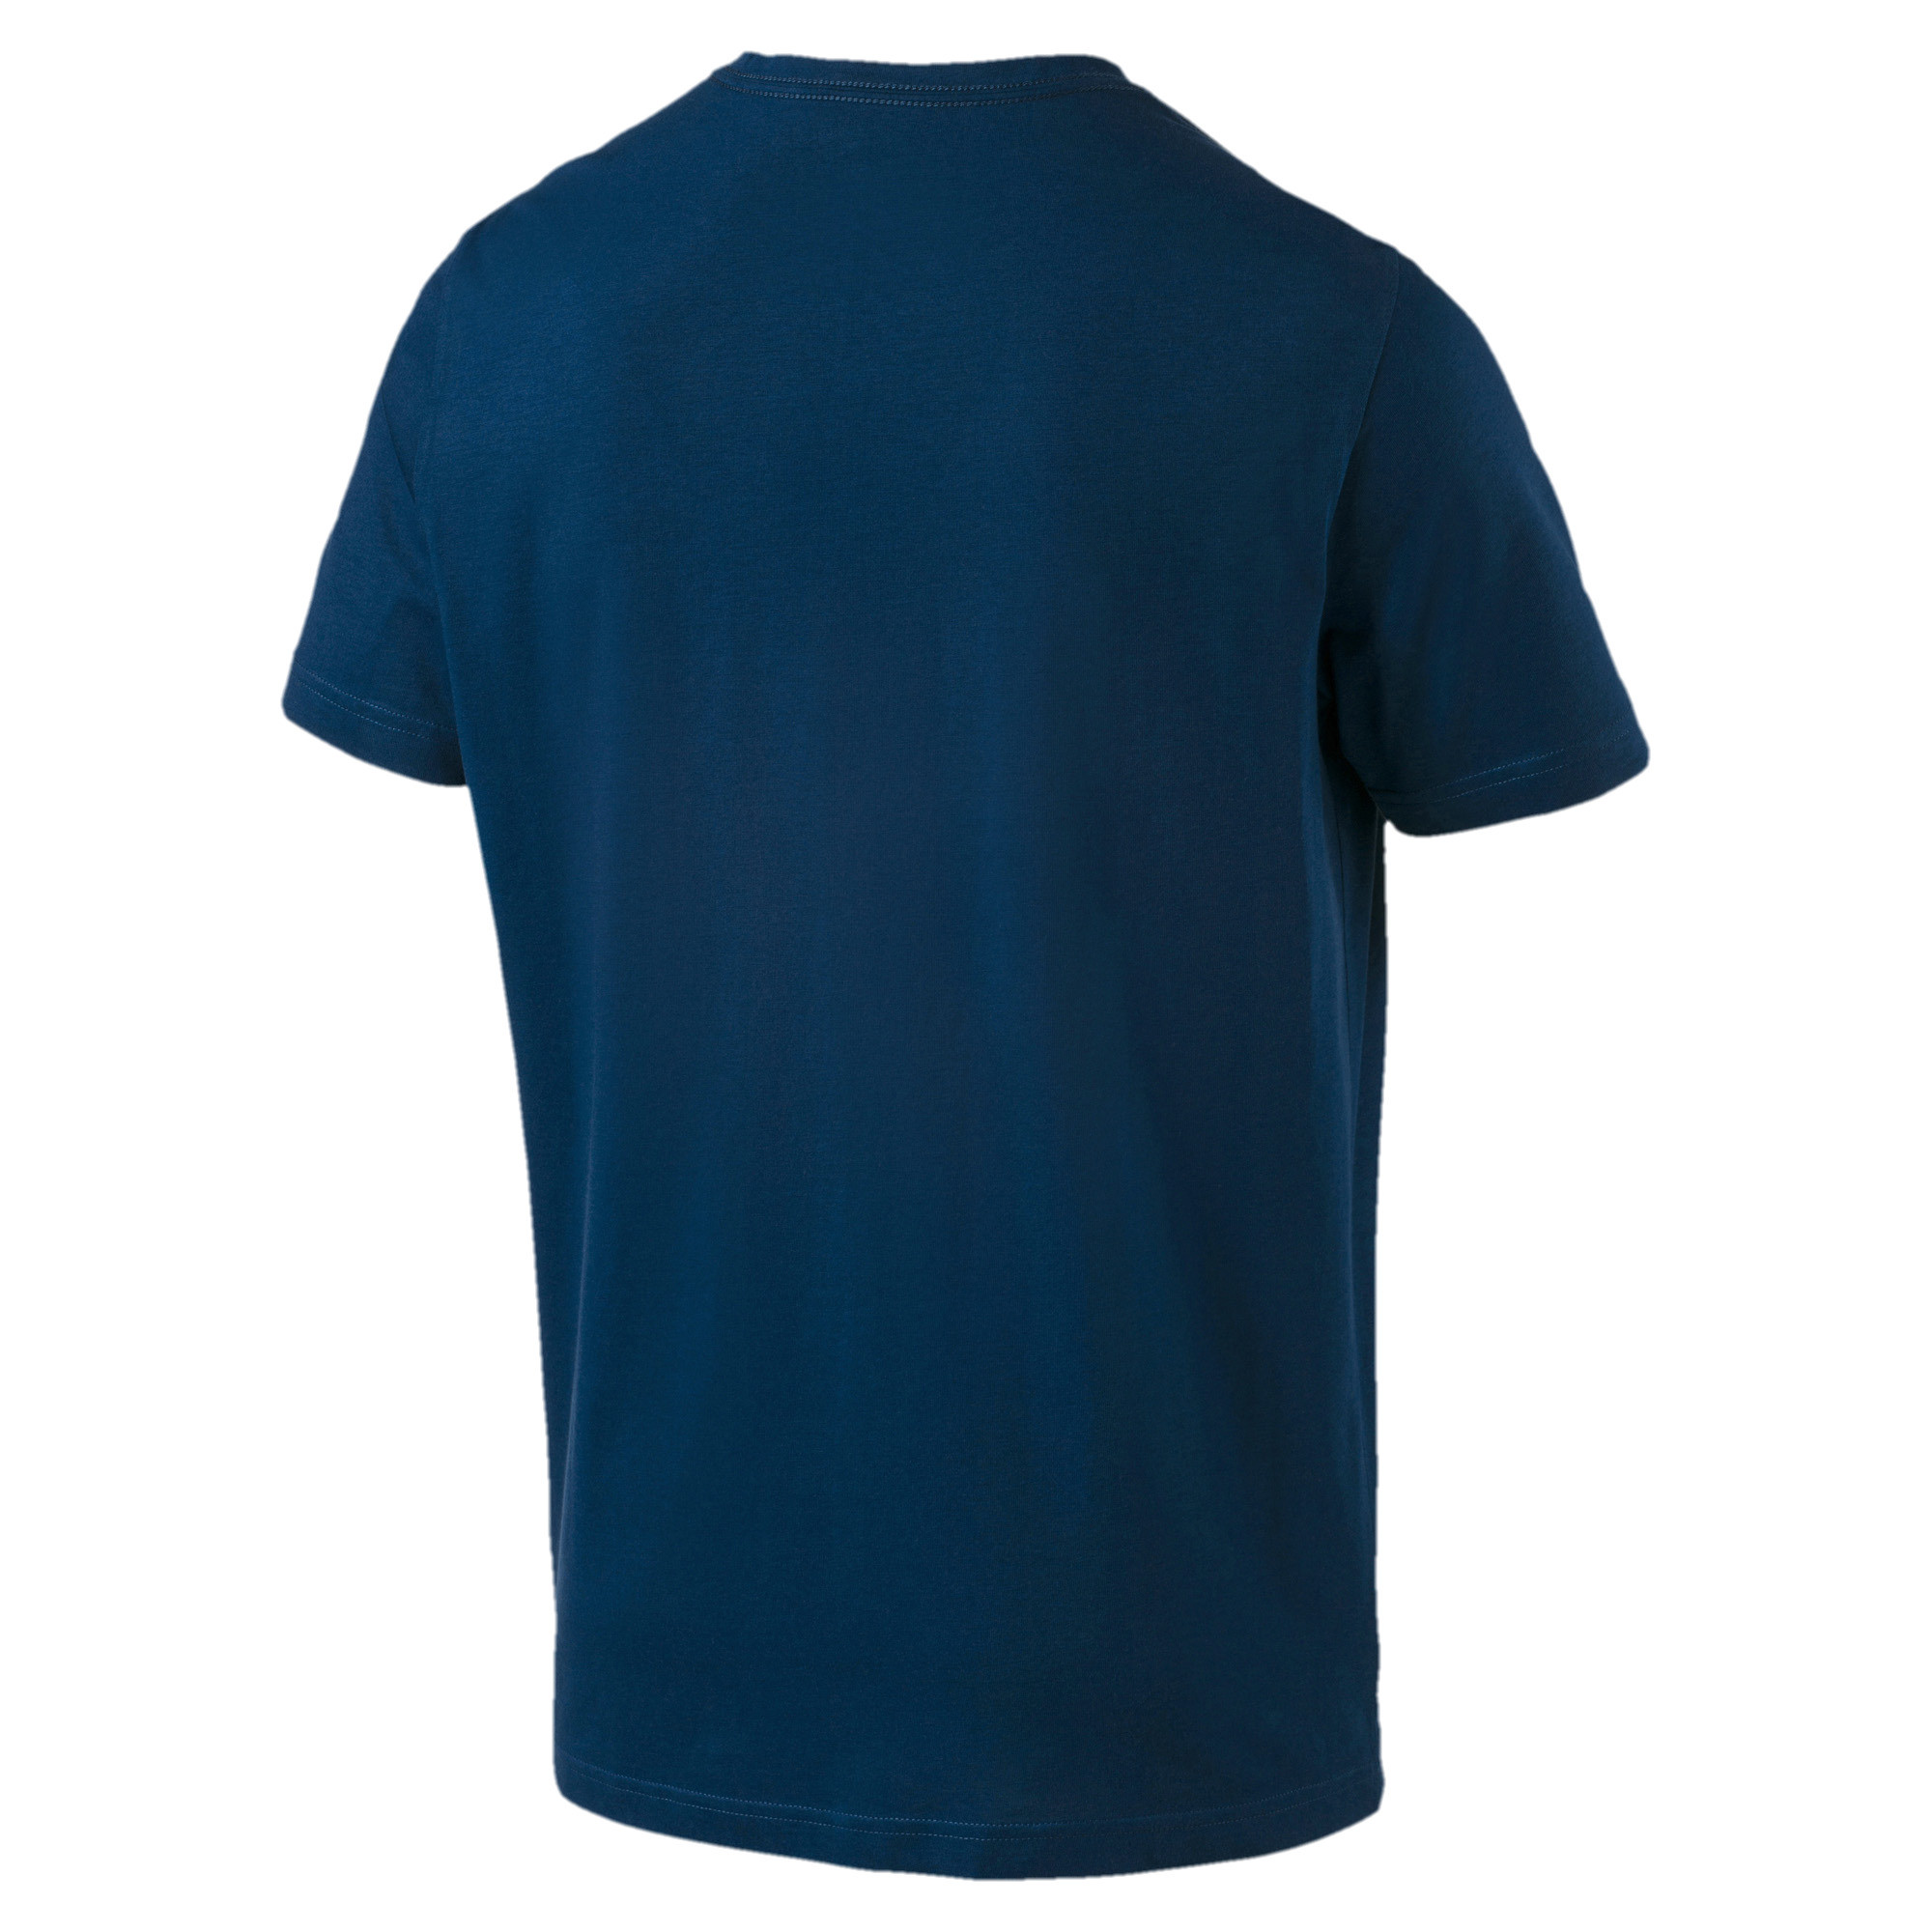 PUMA-Essentials-Men-039-s-V-Neck-Tee-Men-Tee-Basics thumbnail 29